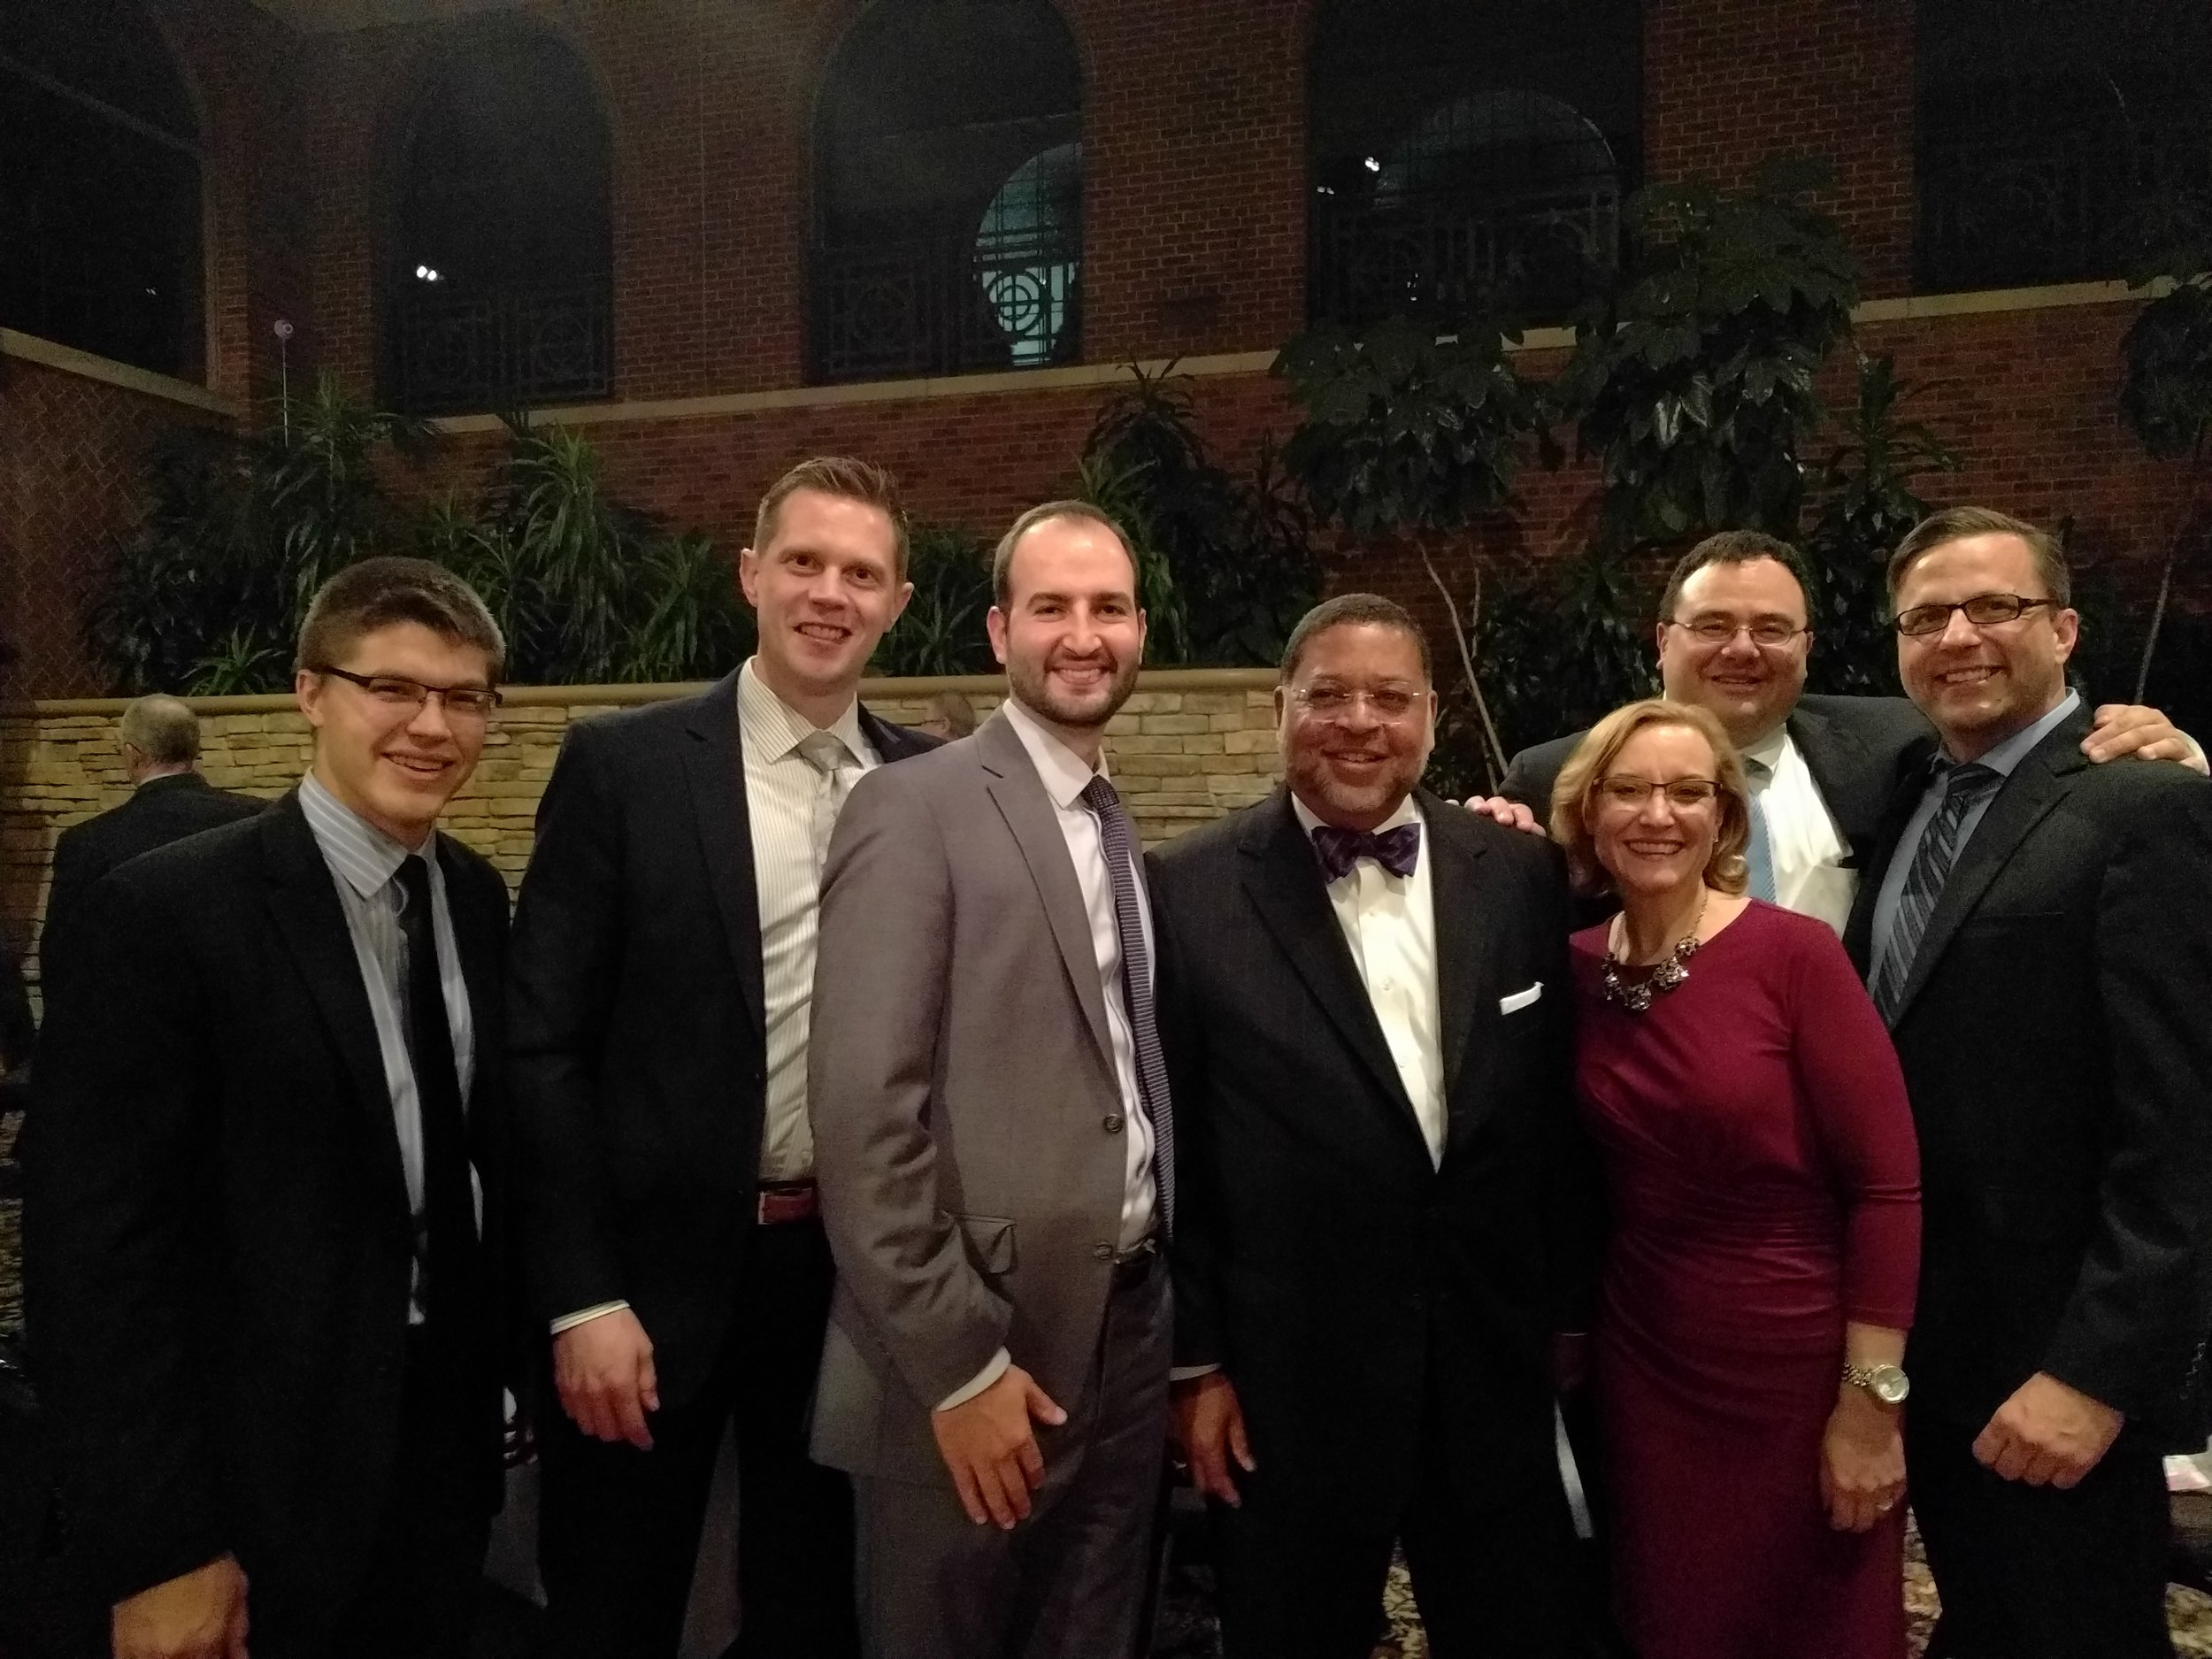 November 10, 2016  - Darrow Mustafa attorneys meet with members of the Michigan Supreme Court (from left to right:  Frank Dame, law clerk to U.S. District Court Judge Bernard Friedman; Christopher Roelofs; Ryan Carnago; Justice Robert Young; Justice Joan Larsen; Christopher Darrow; and Mark Zylka).    Chief Justice Robert Young and Justice Joan Larsen, of the Michigan Supreme Court,are currently under consideration for nomination by President-elect Trump to the United States Supreme Court.